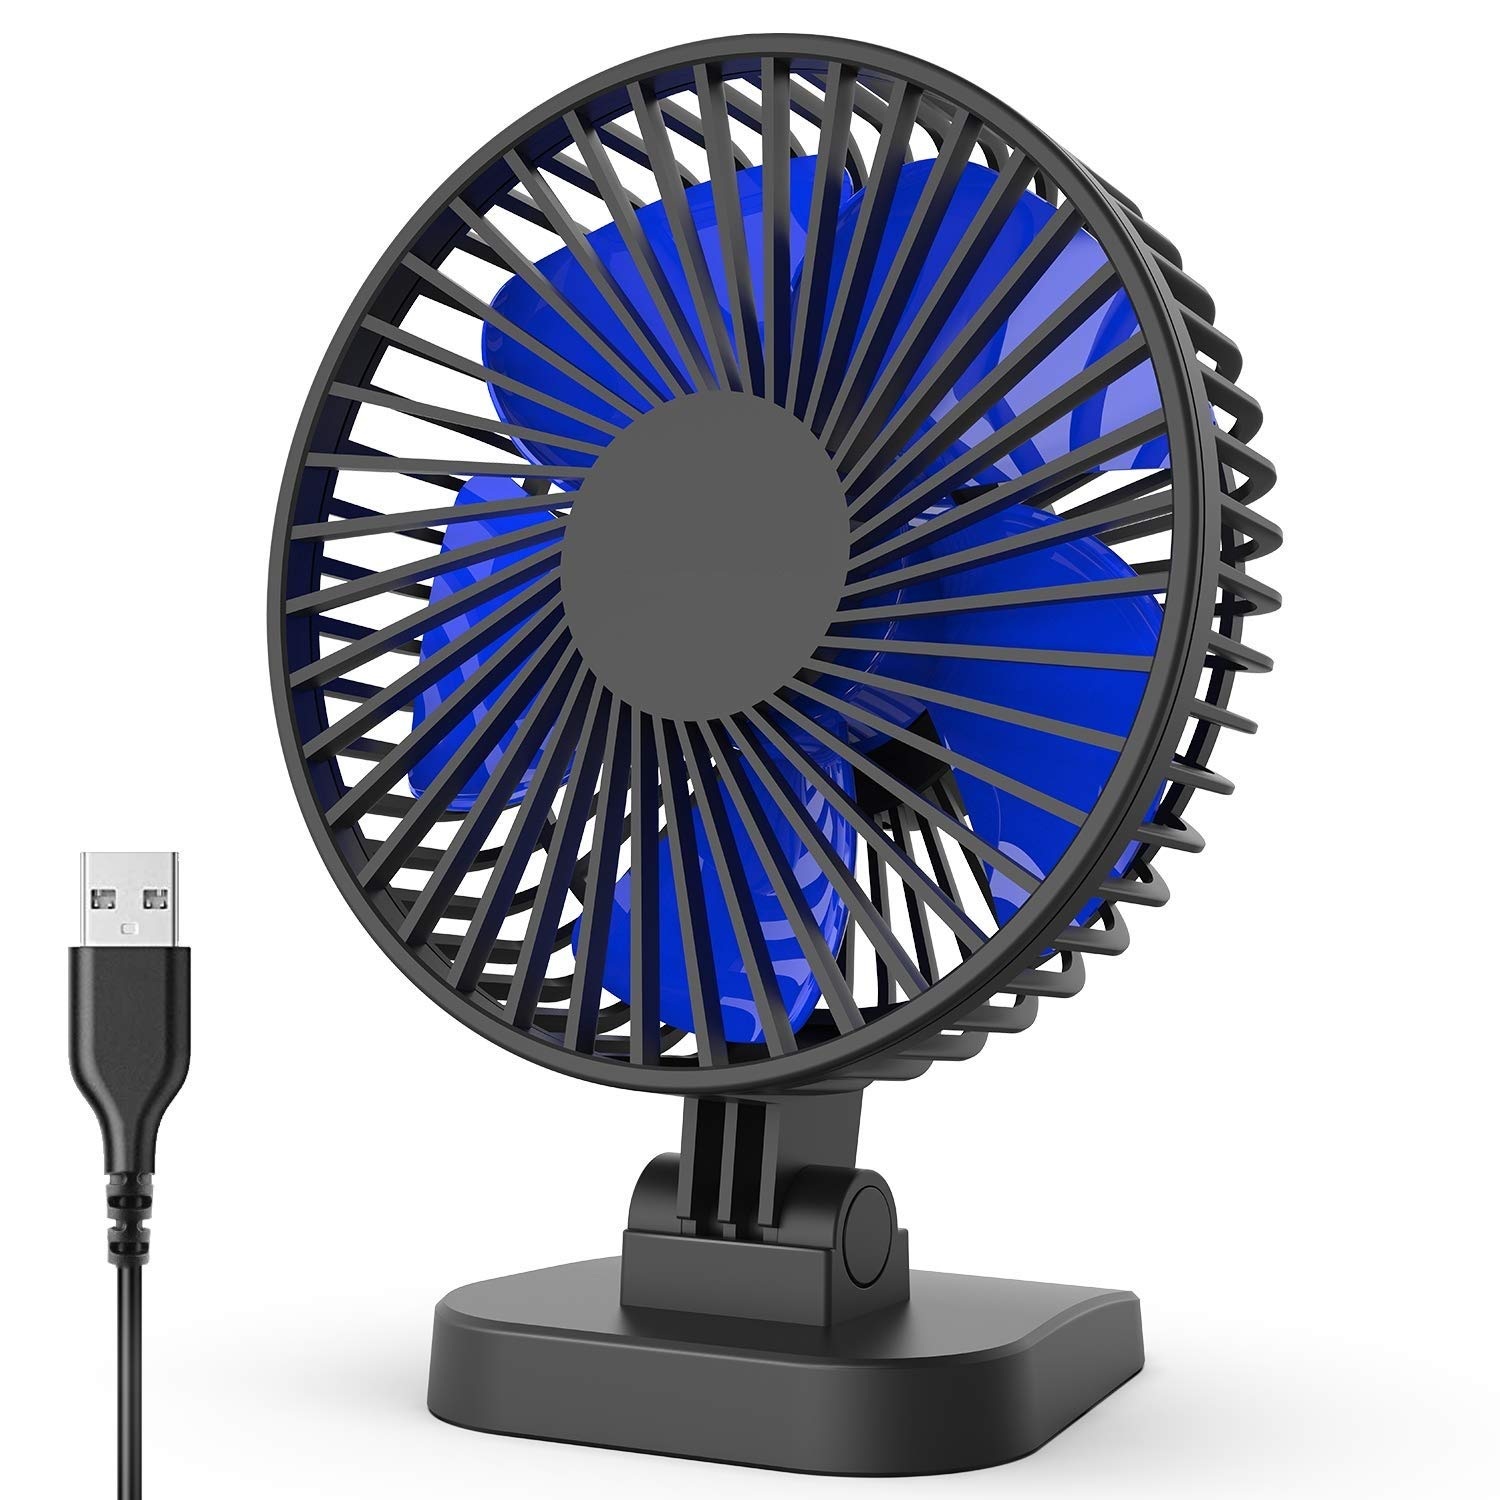 USB Fans for Desk, Super Strong Airflow, 3 Speeds, Whisper Quiet, 40 Adjustable Tilt Angle for Better Cooling, Perfect Portable Personal Fan for Desktop Office Table, 4 inch